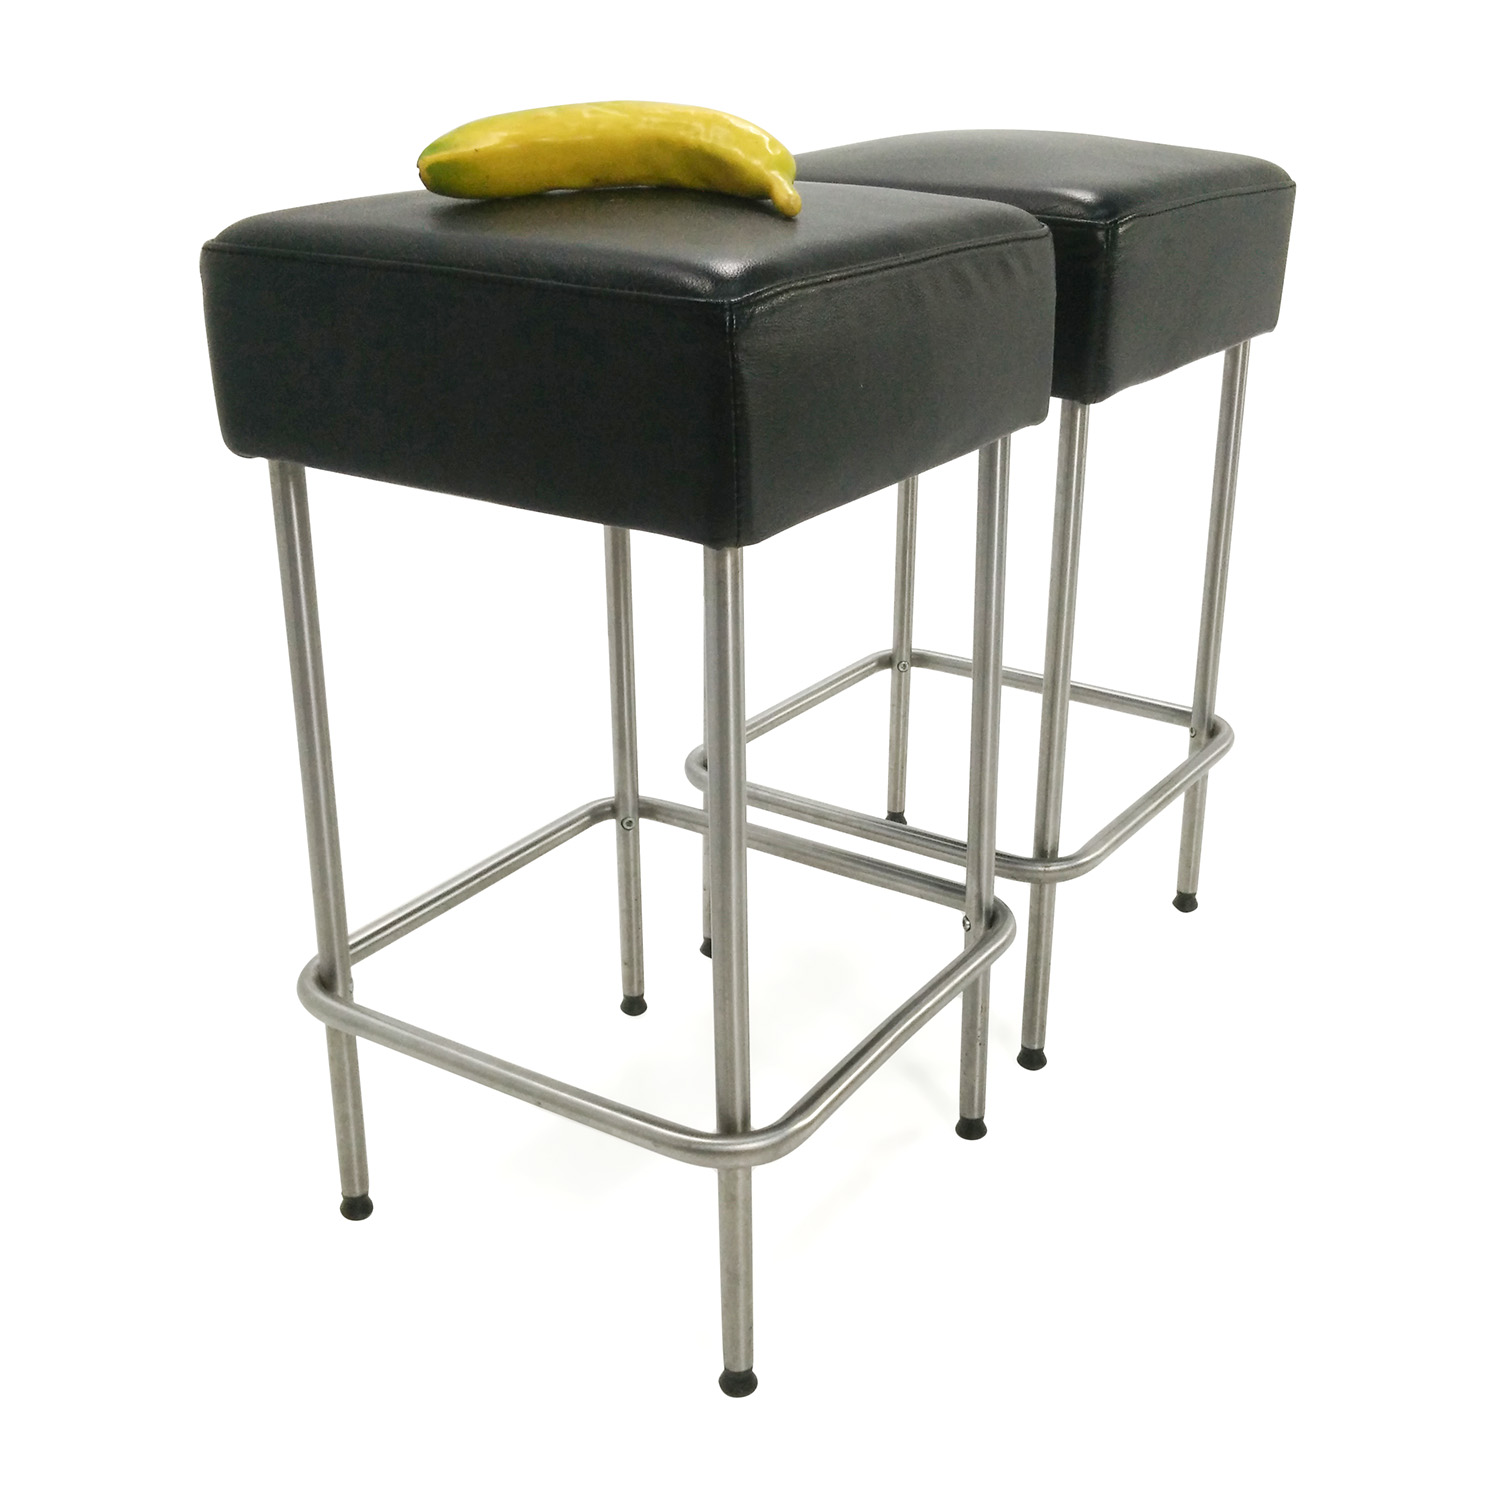 Cheap Black Barstools 71 Off Ikea Ikea Black Faux Leather Bar Stools Chairs